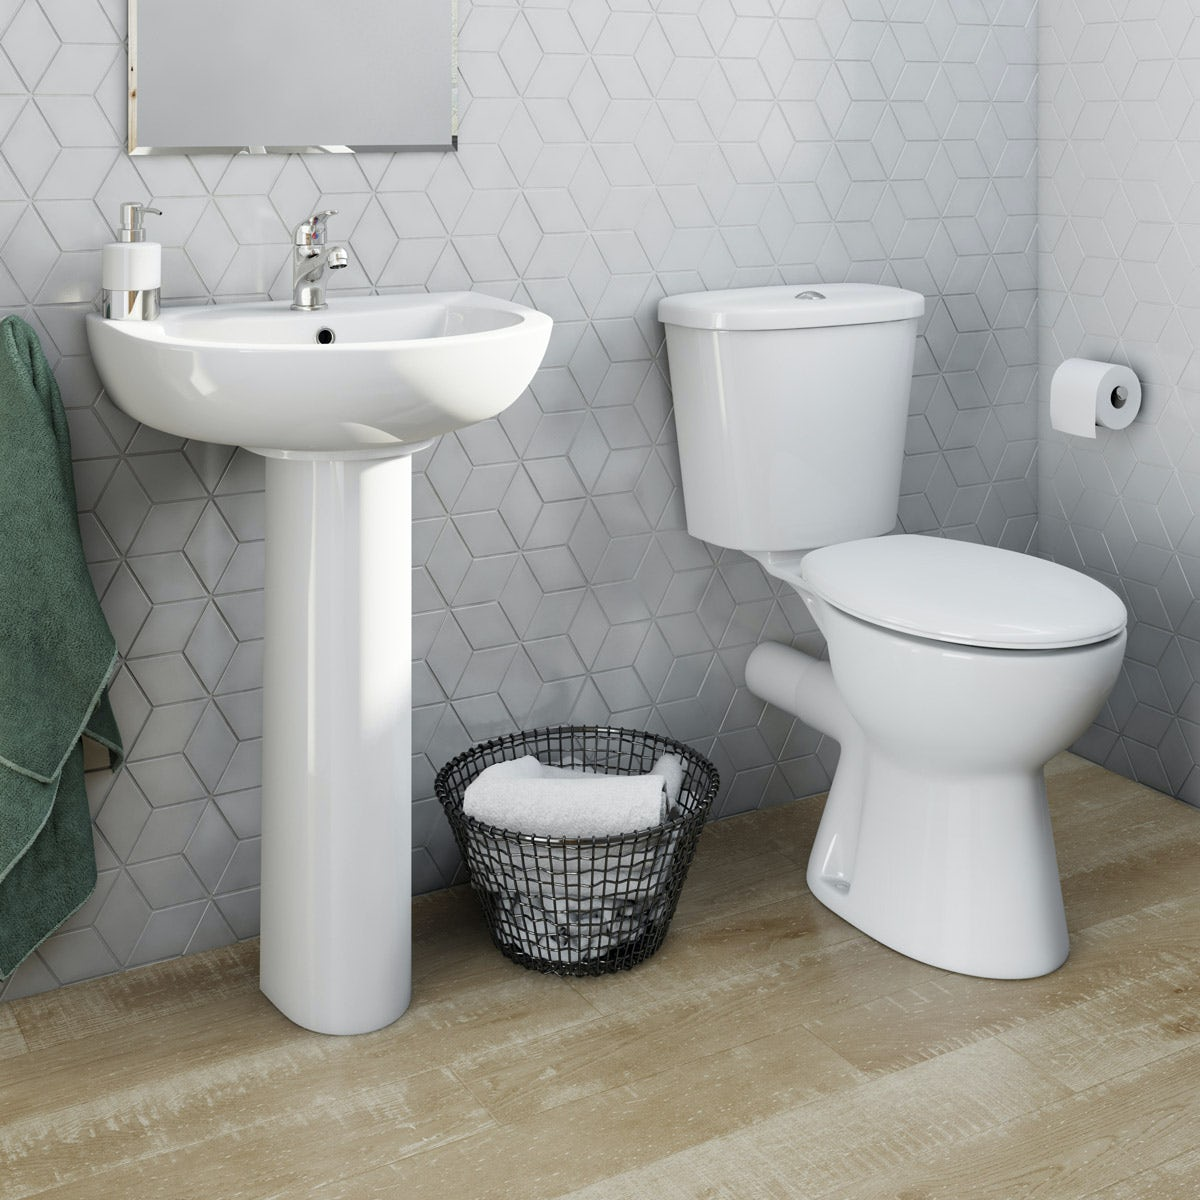 Modern White Close Coupled Toilet with Seat /& Cistern 420mm Full Pedestal Basin Sink Ceramic Bathroom Suite Set